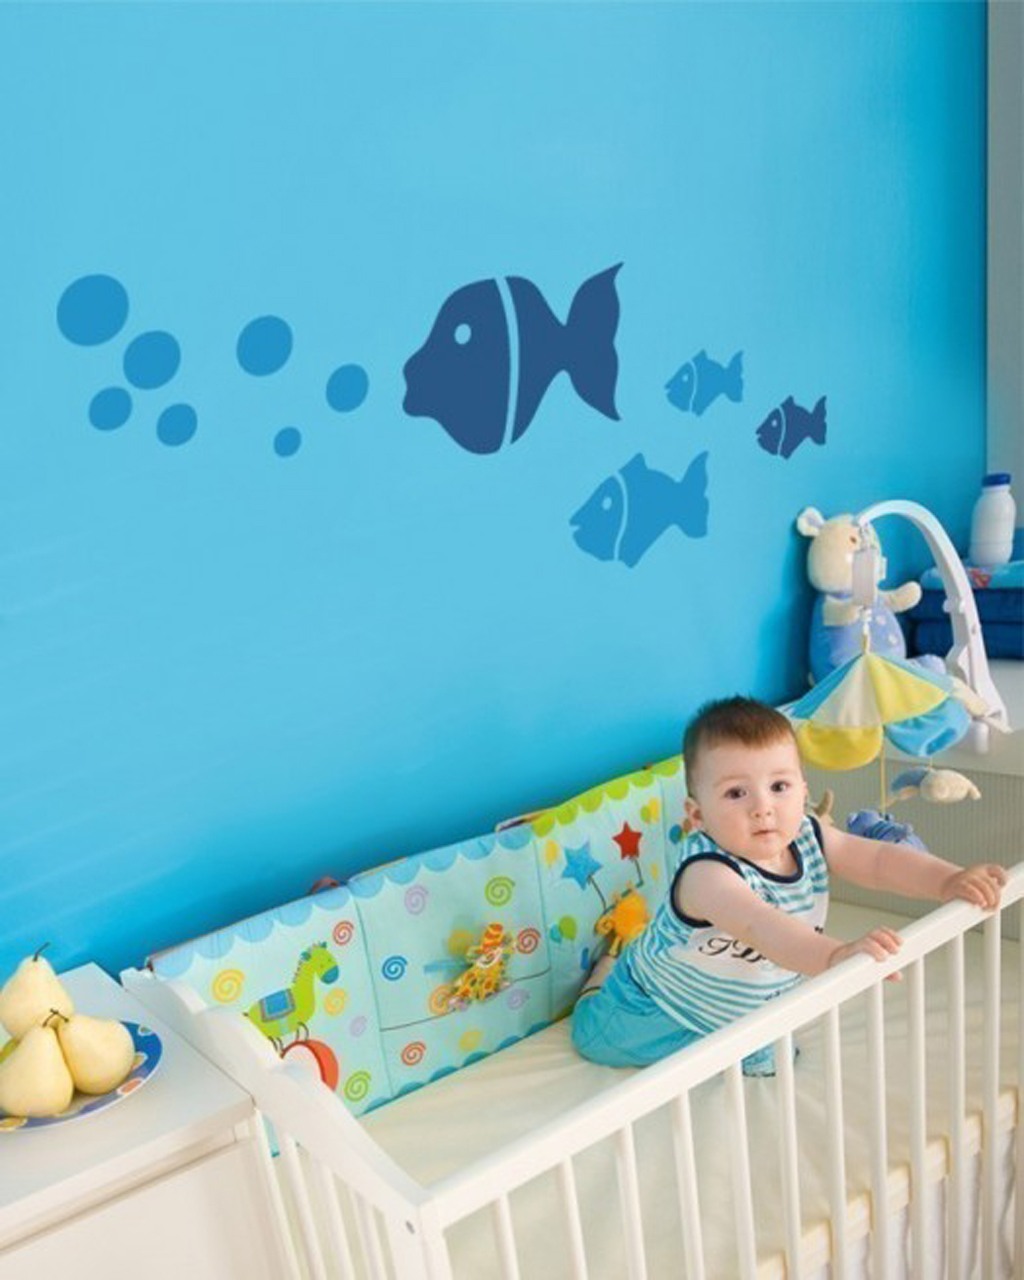 Kids Room Wall Design: Tips On How To Décor Kids Room